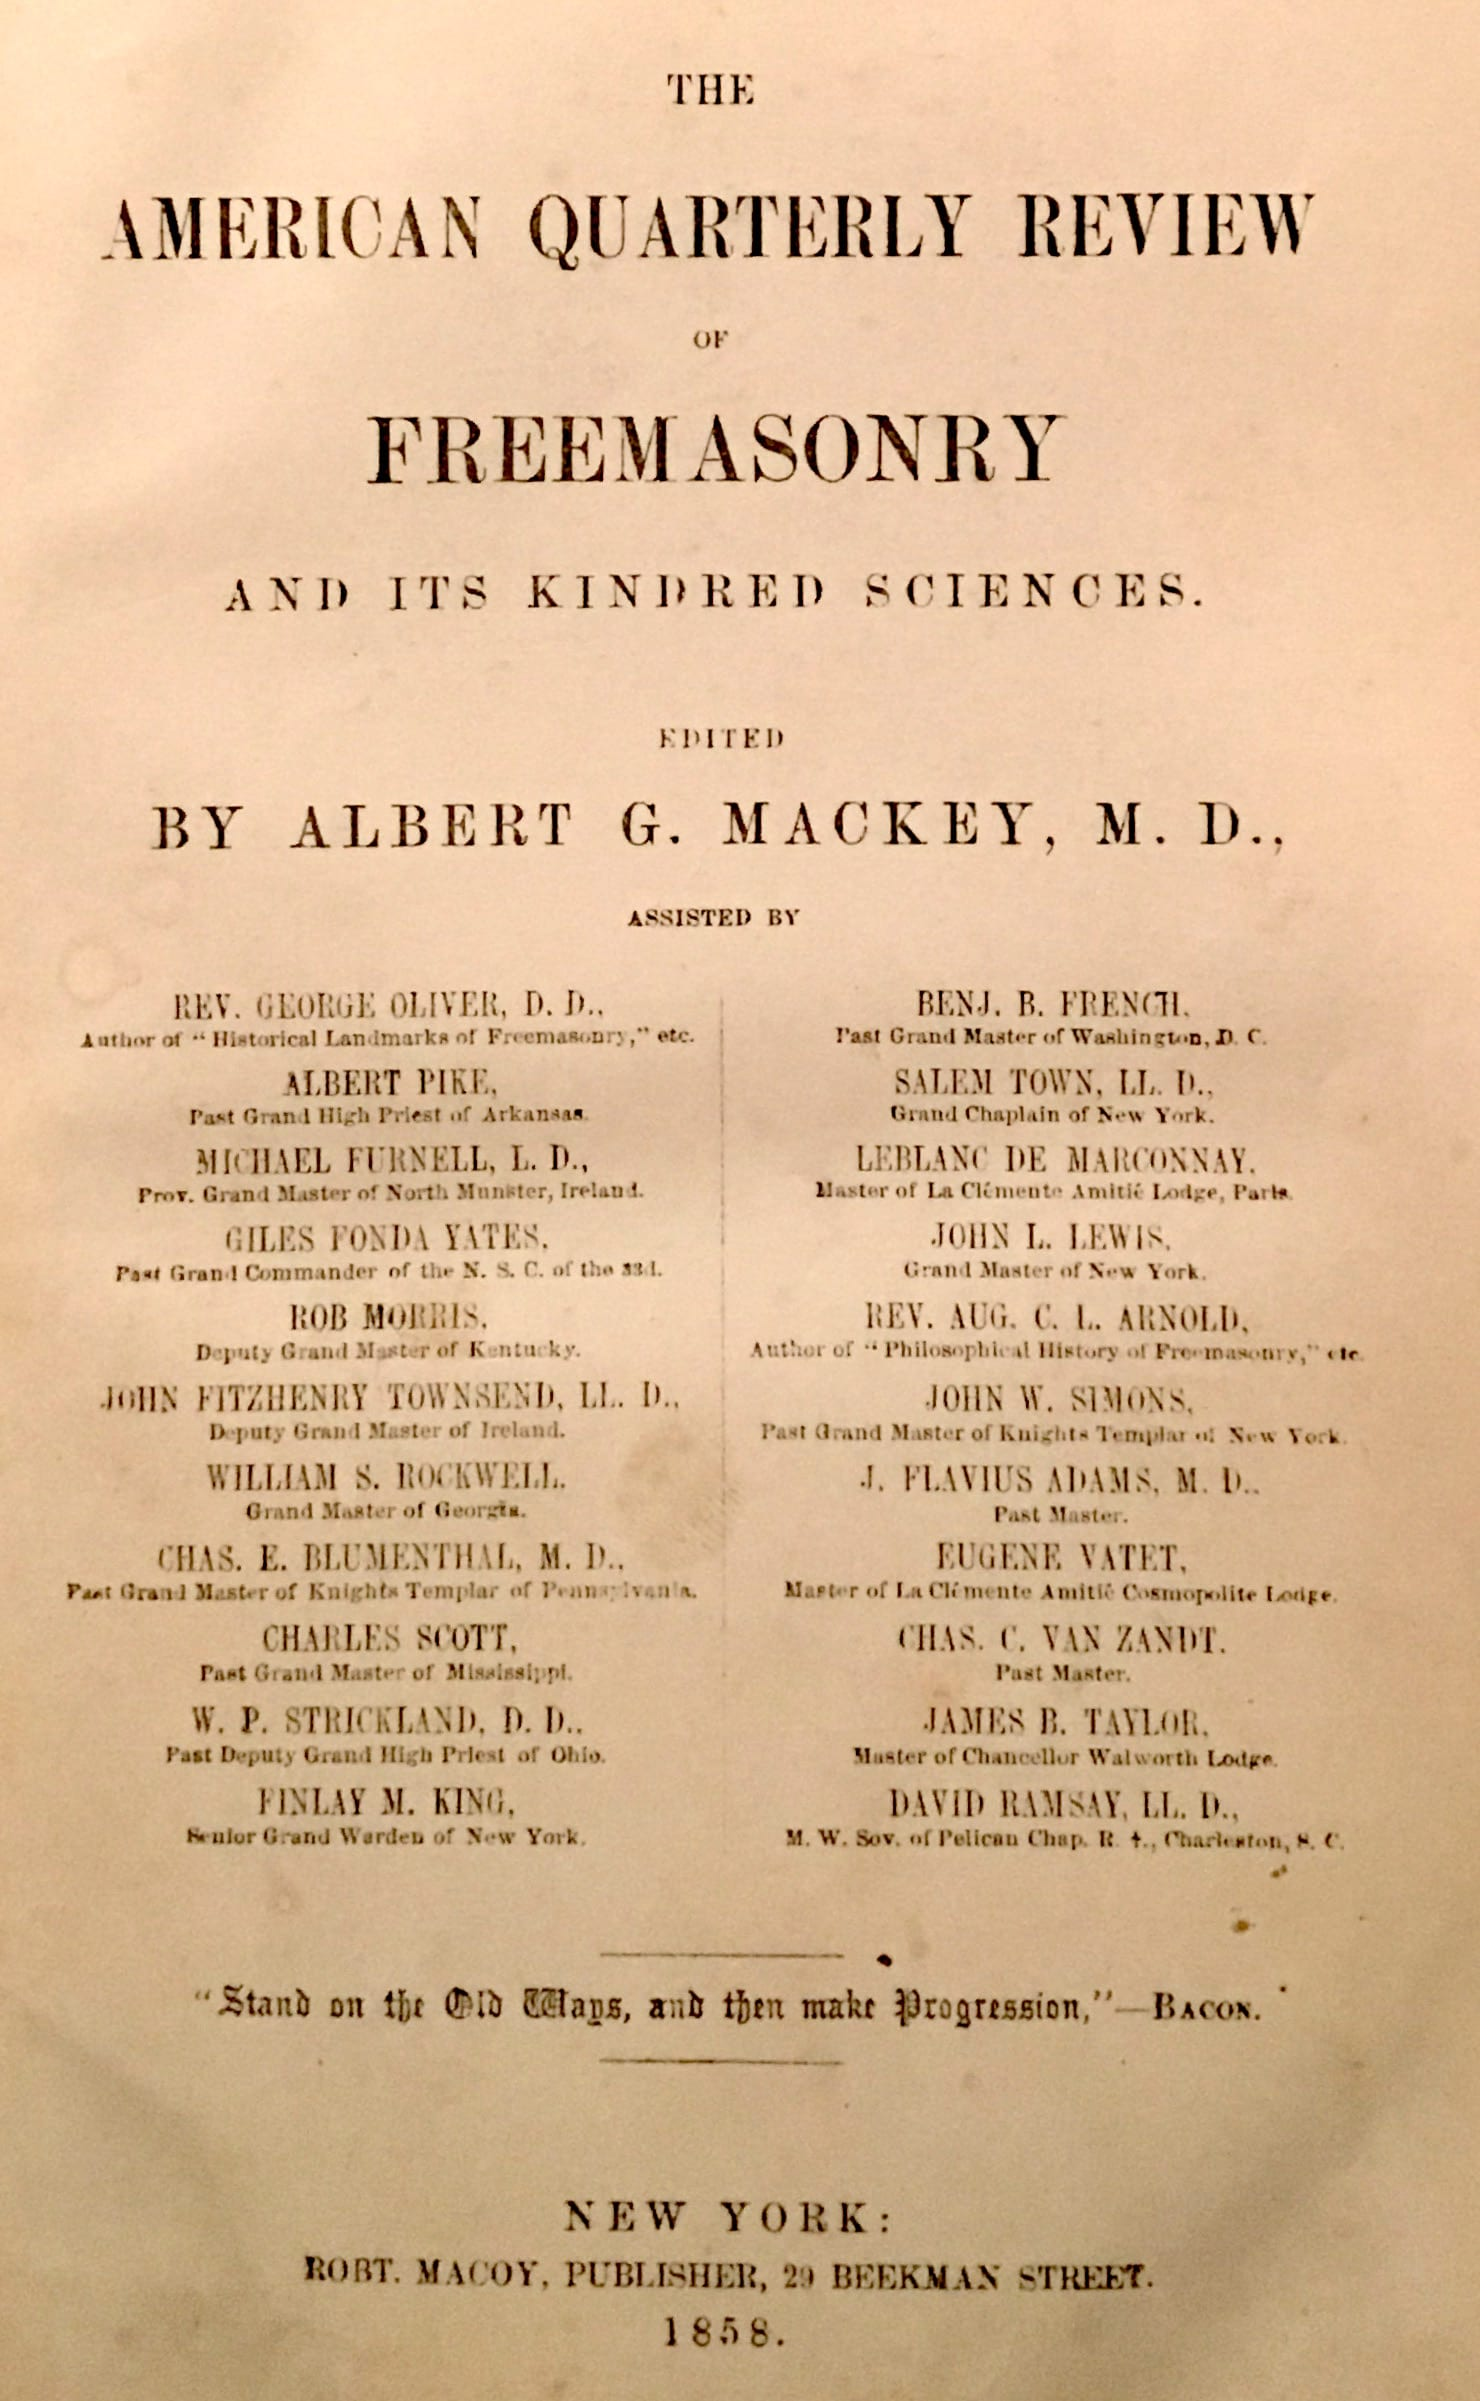 American Quarterly Review of Freemasonry and Its Kindred Sciences